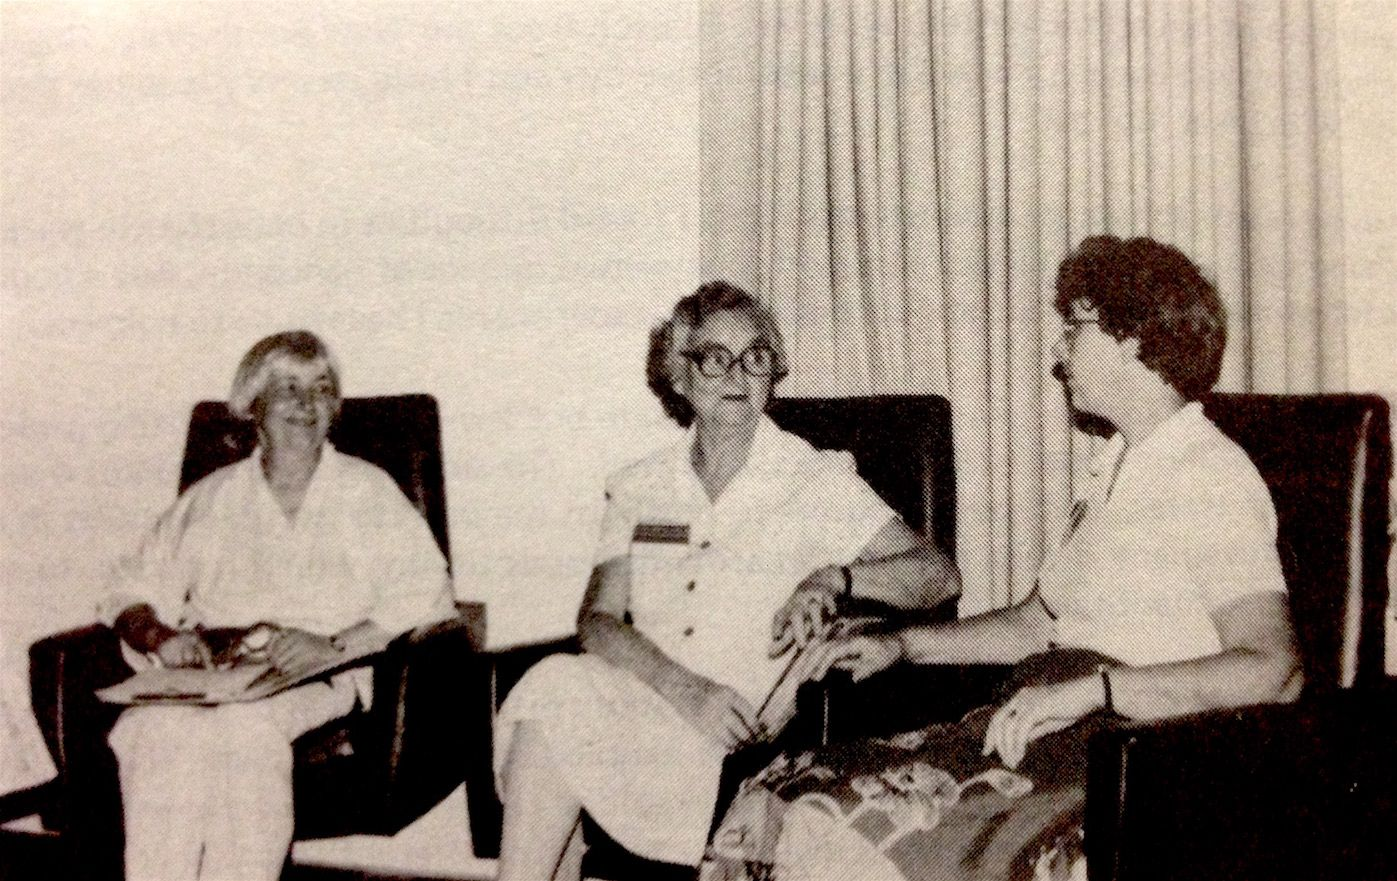 Photograph of Joan Bacon and two other women